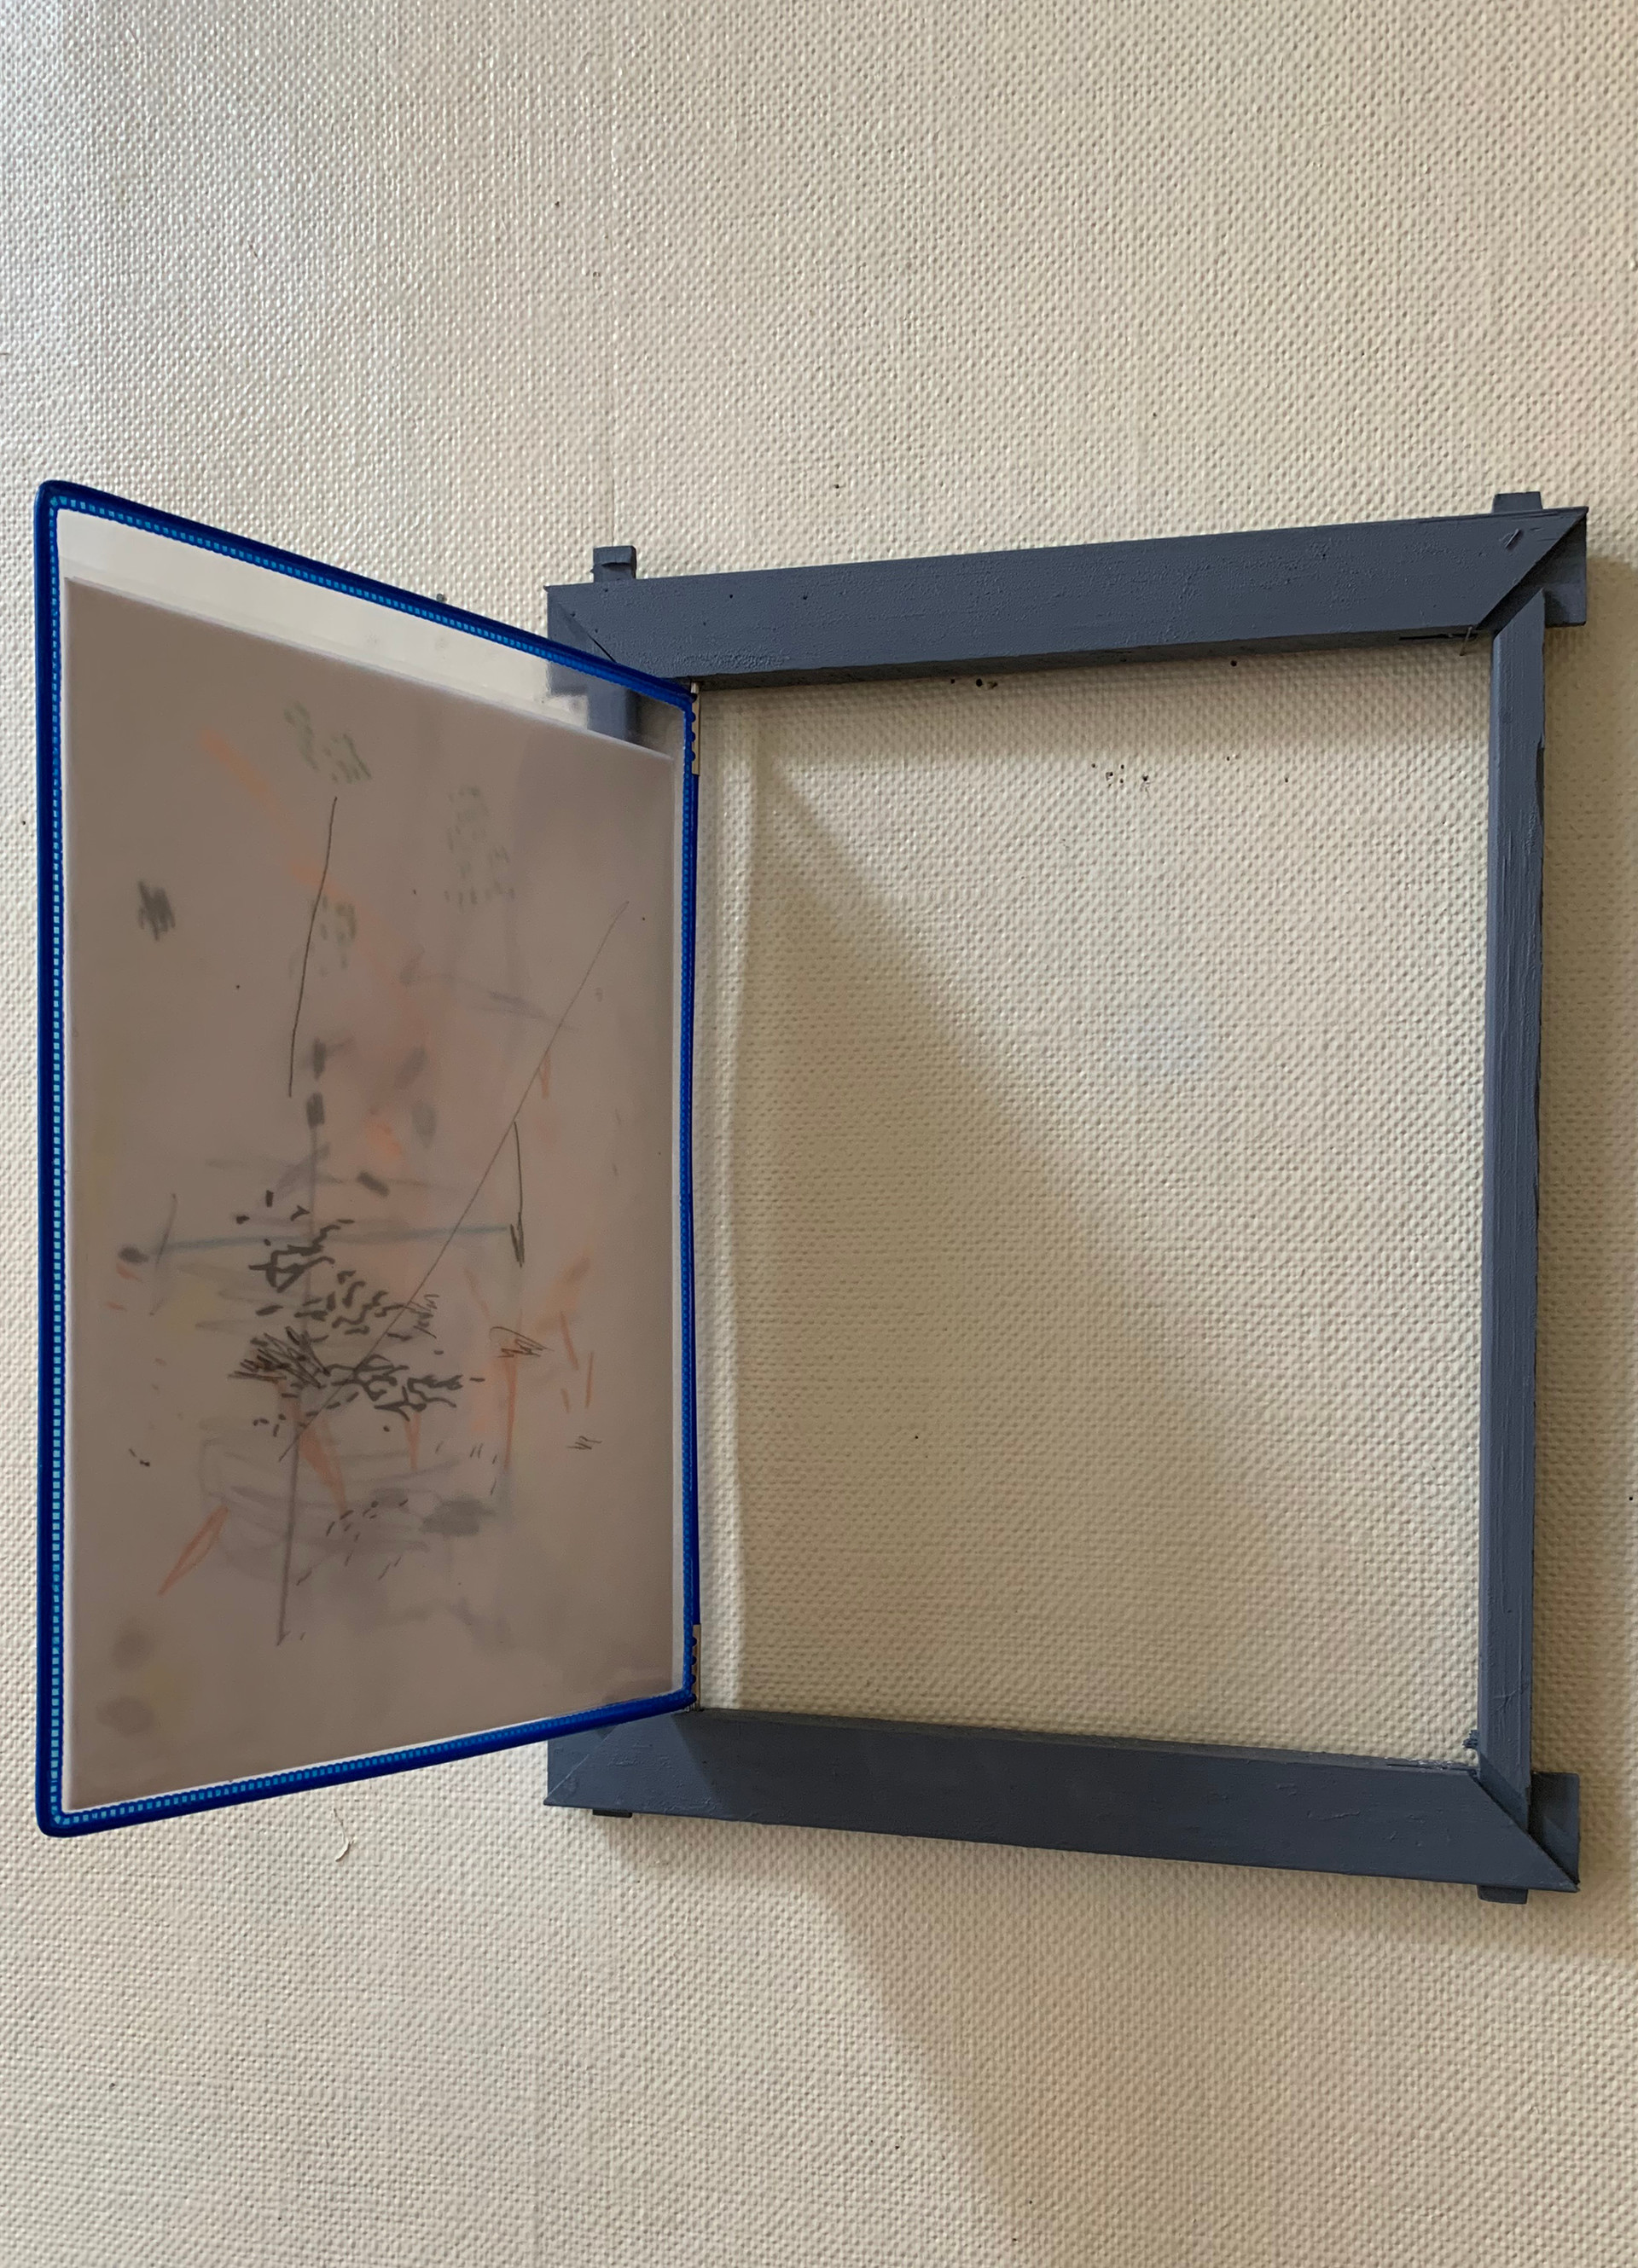 N.Lichtig, Un-Unframed Series (wood, pencil on paper, transparent film, sometimes: pebble) and (silkscreen print on fabric, glass, oil and acrylic on canvas, variable sizes). 2012—ongoing.